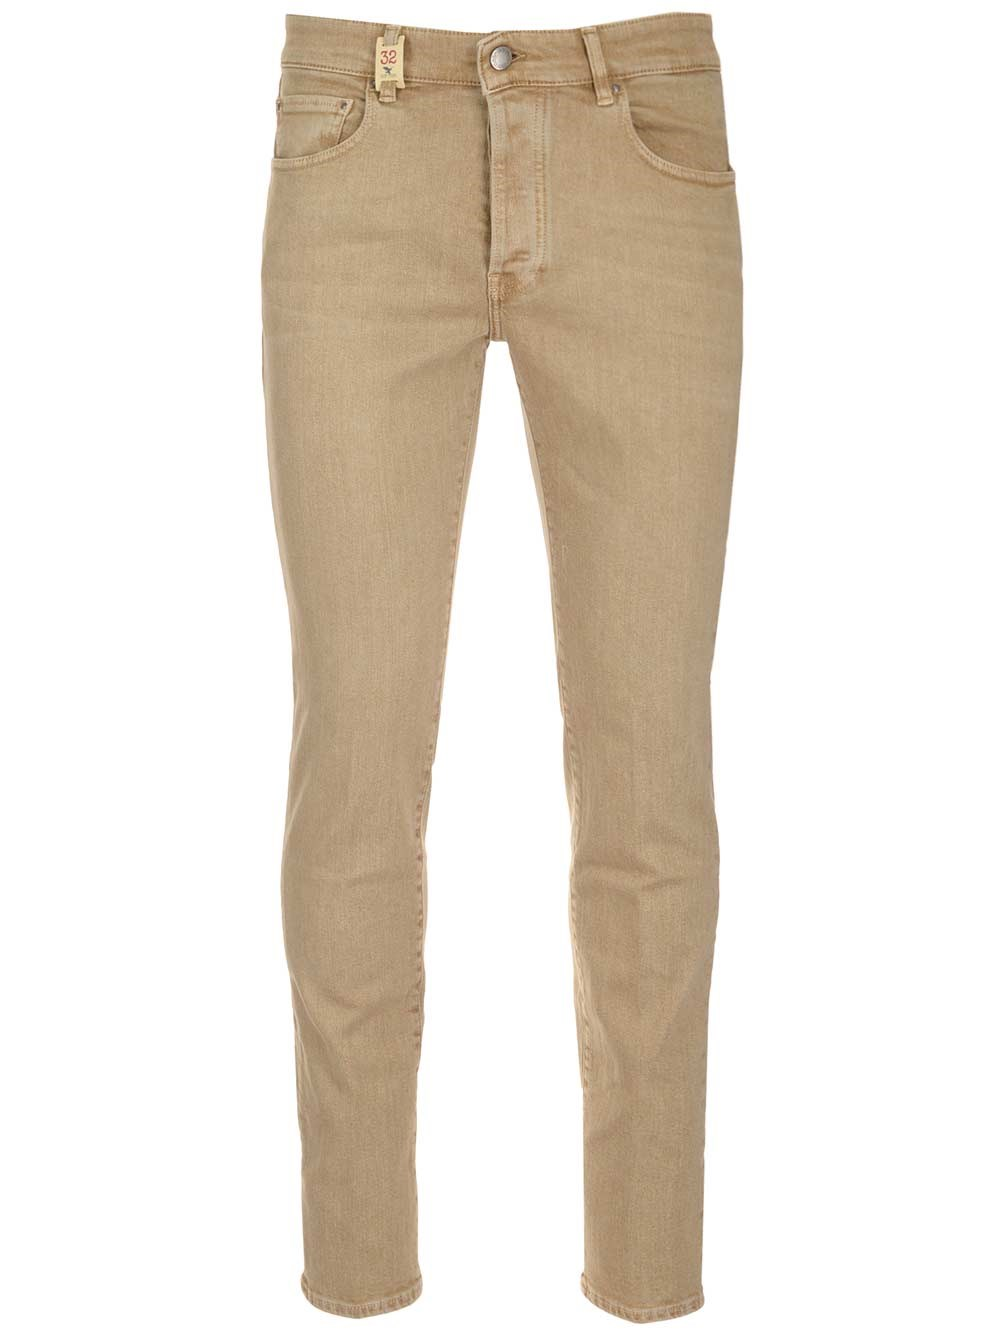 BARMAS Beige Cotton Slim Fit Jeans